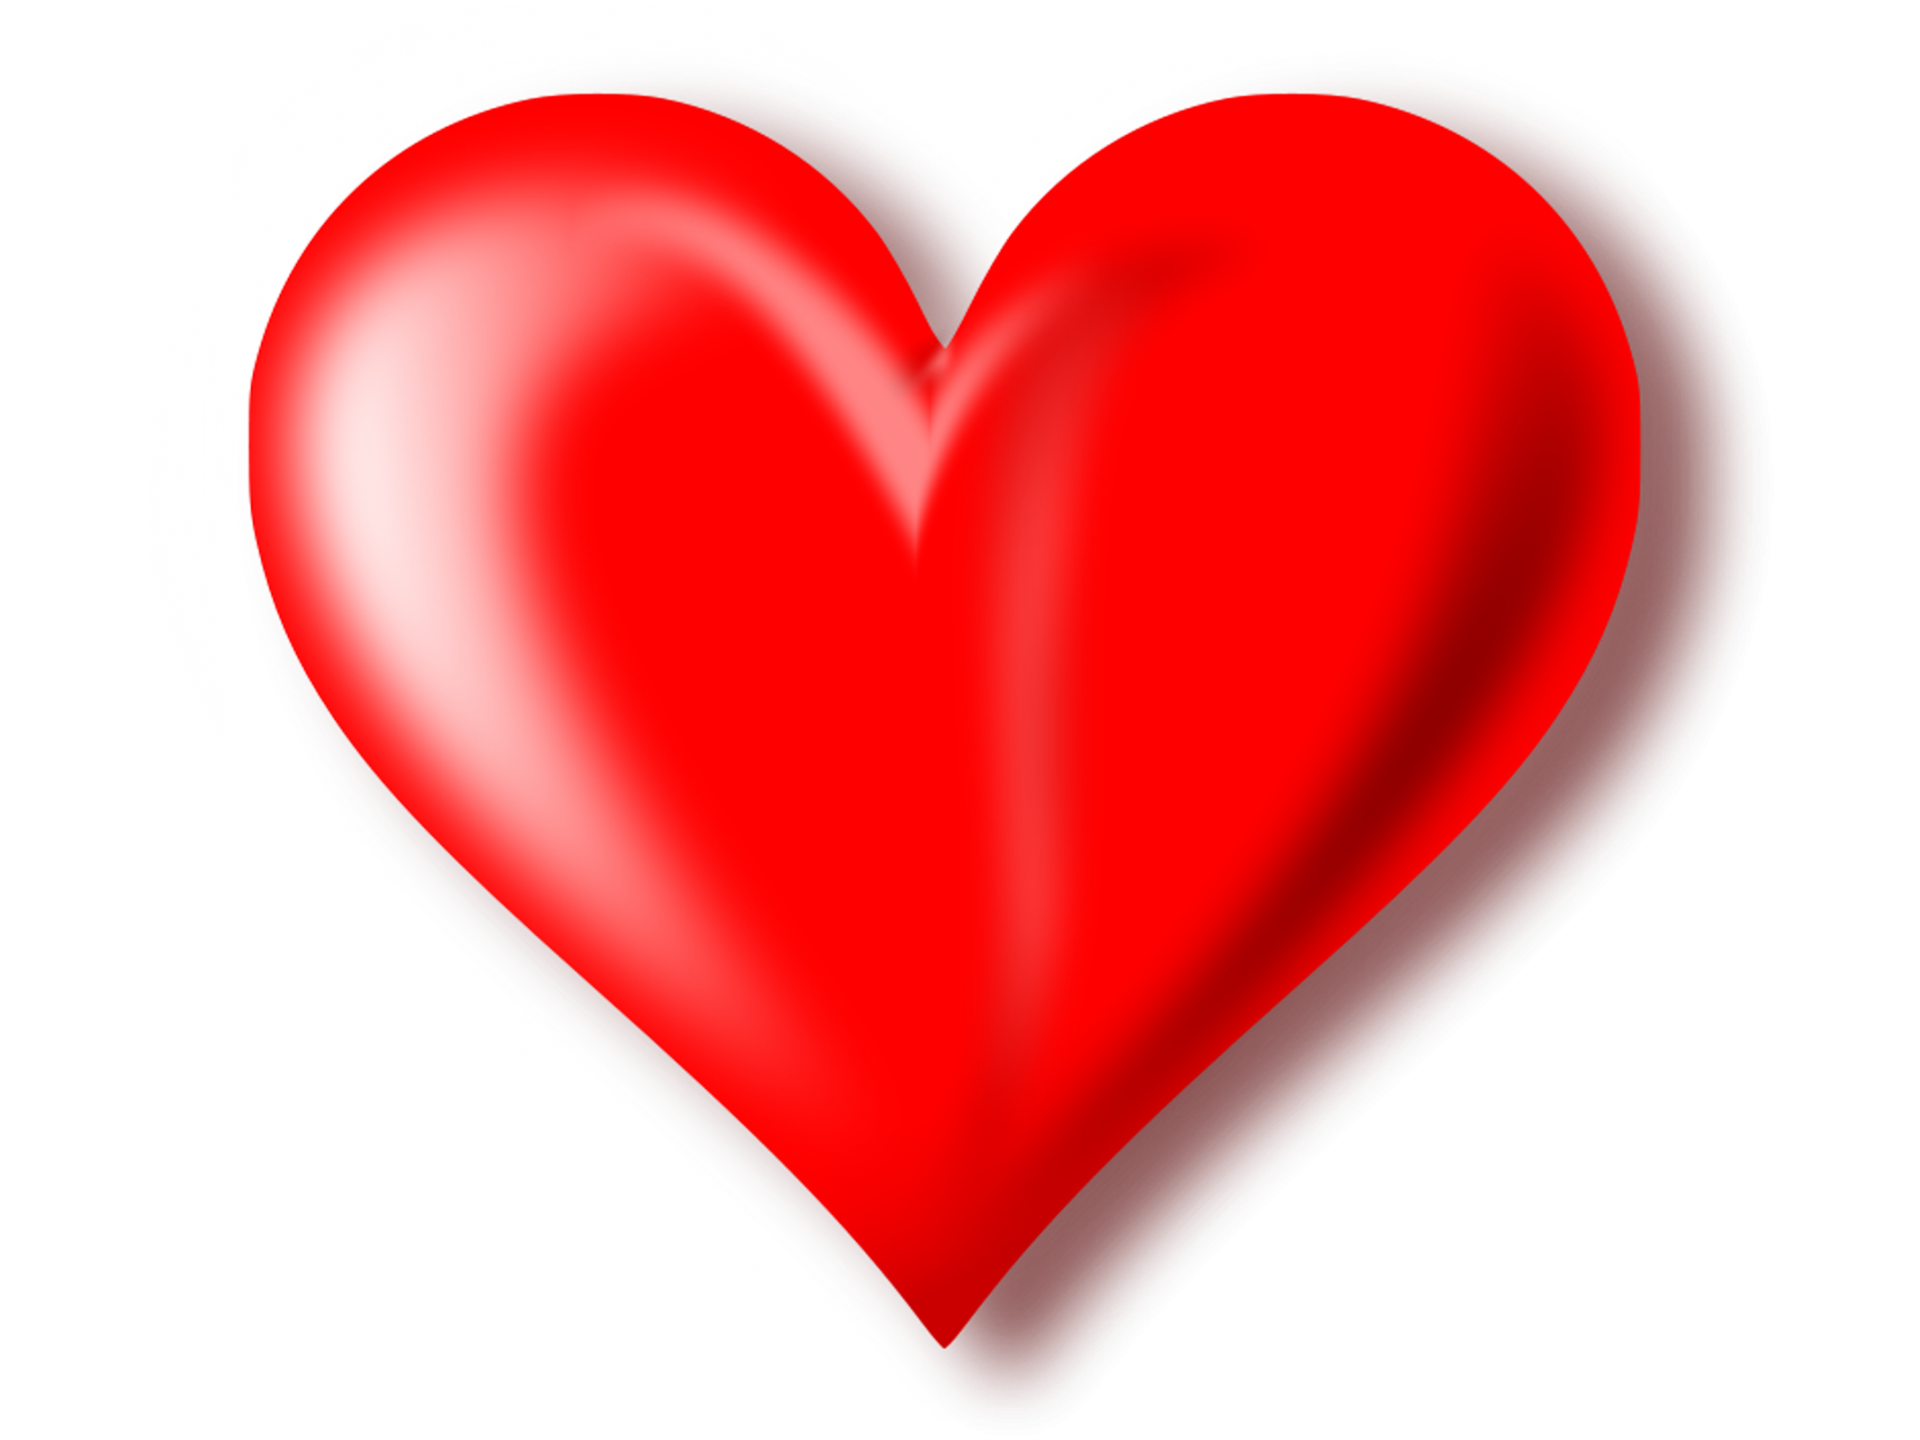 Heart png transparent background. D red mart